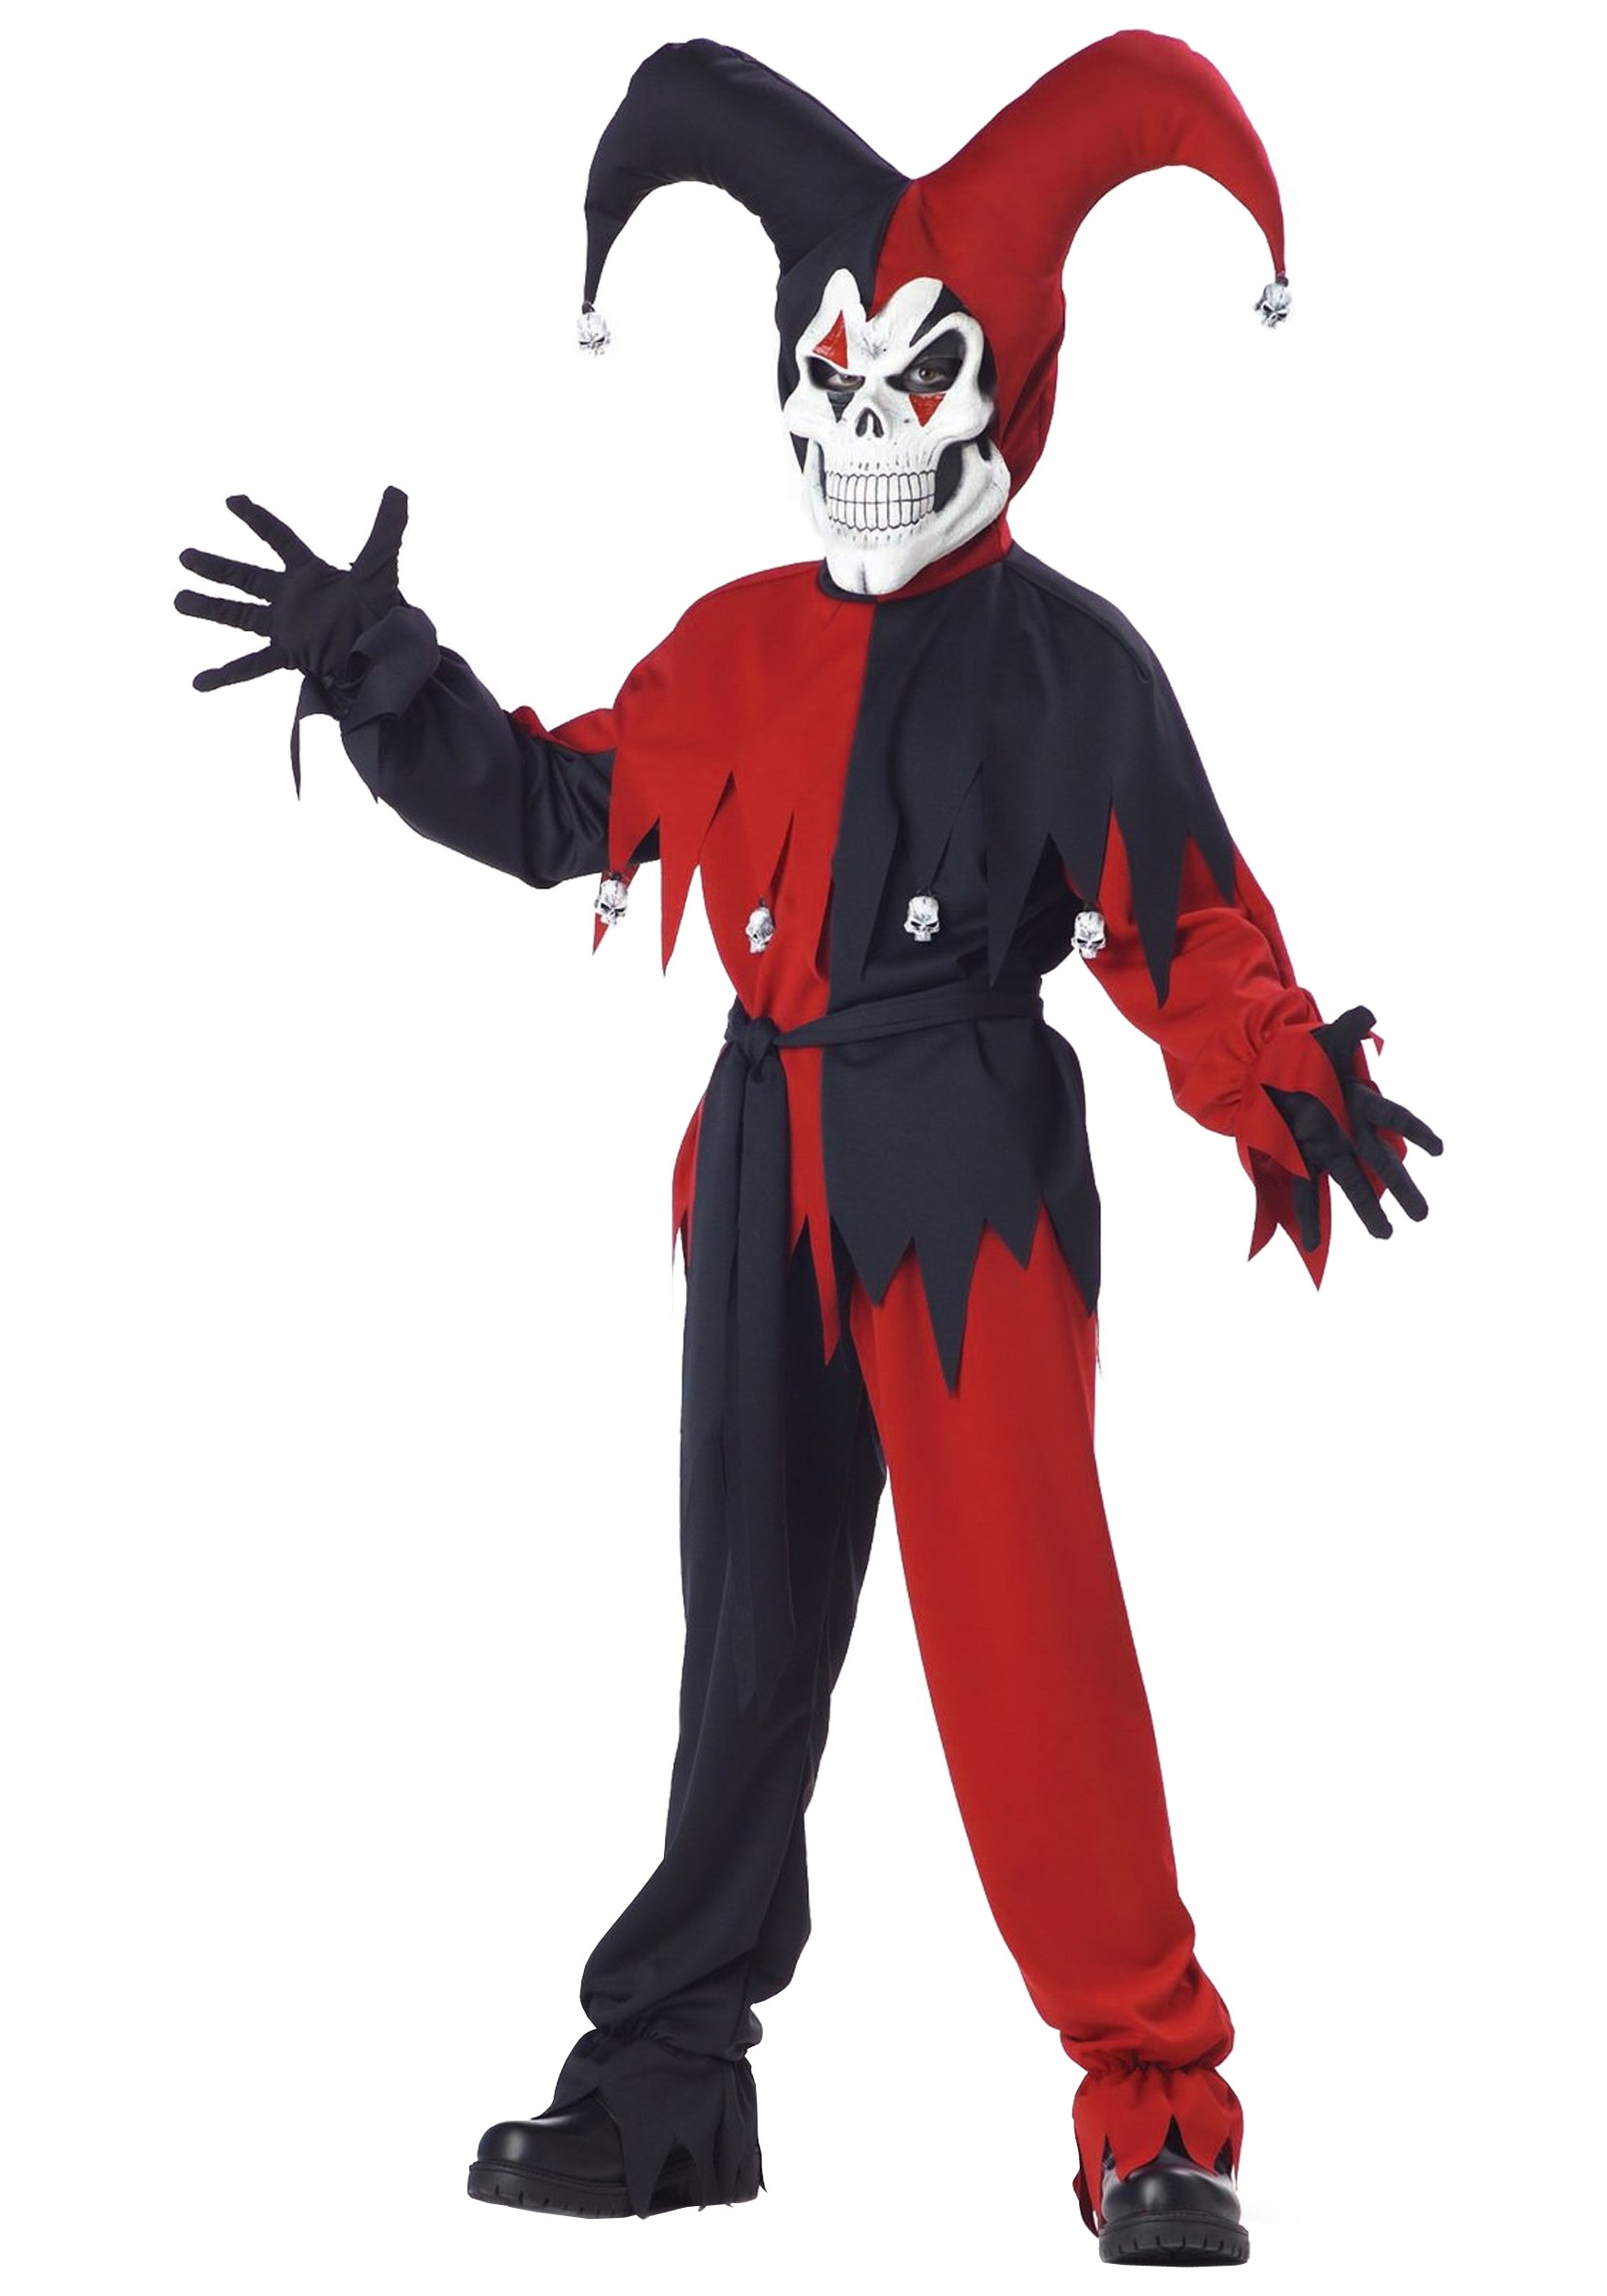 sc 1 st  Halloween Costumes : evil halloween costume  - Germanpascual.Com